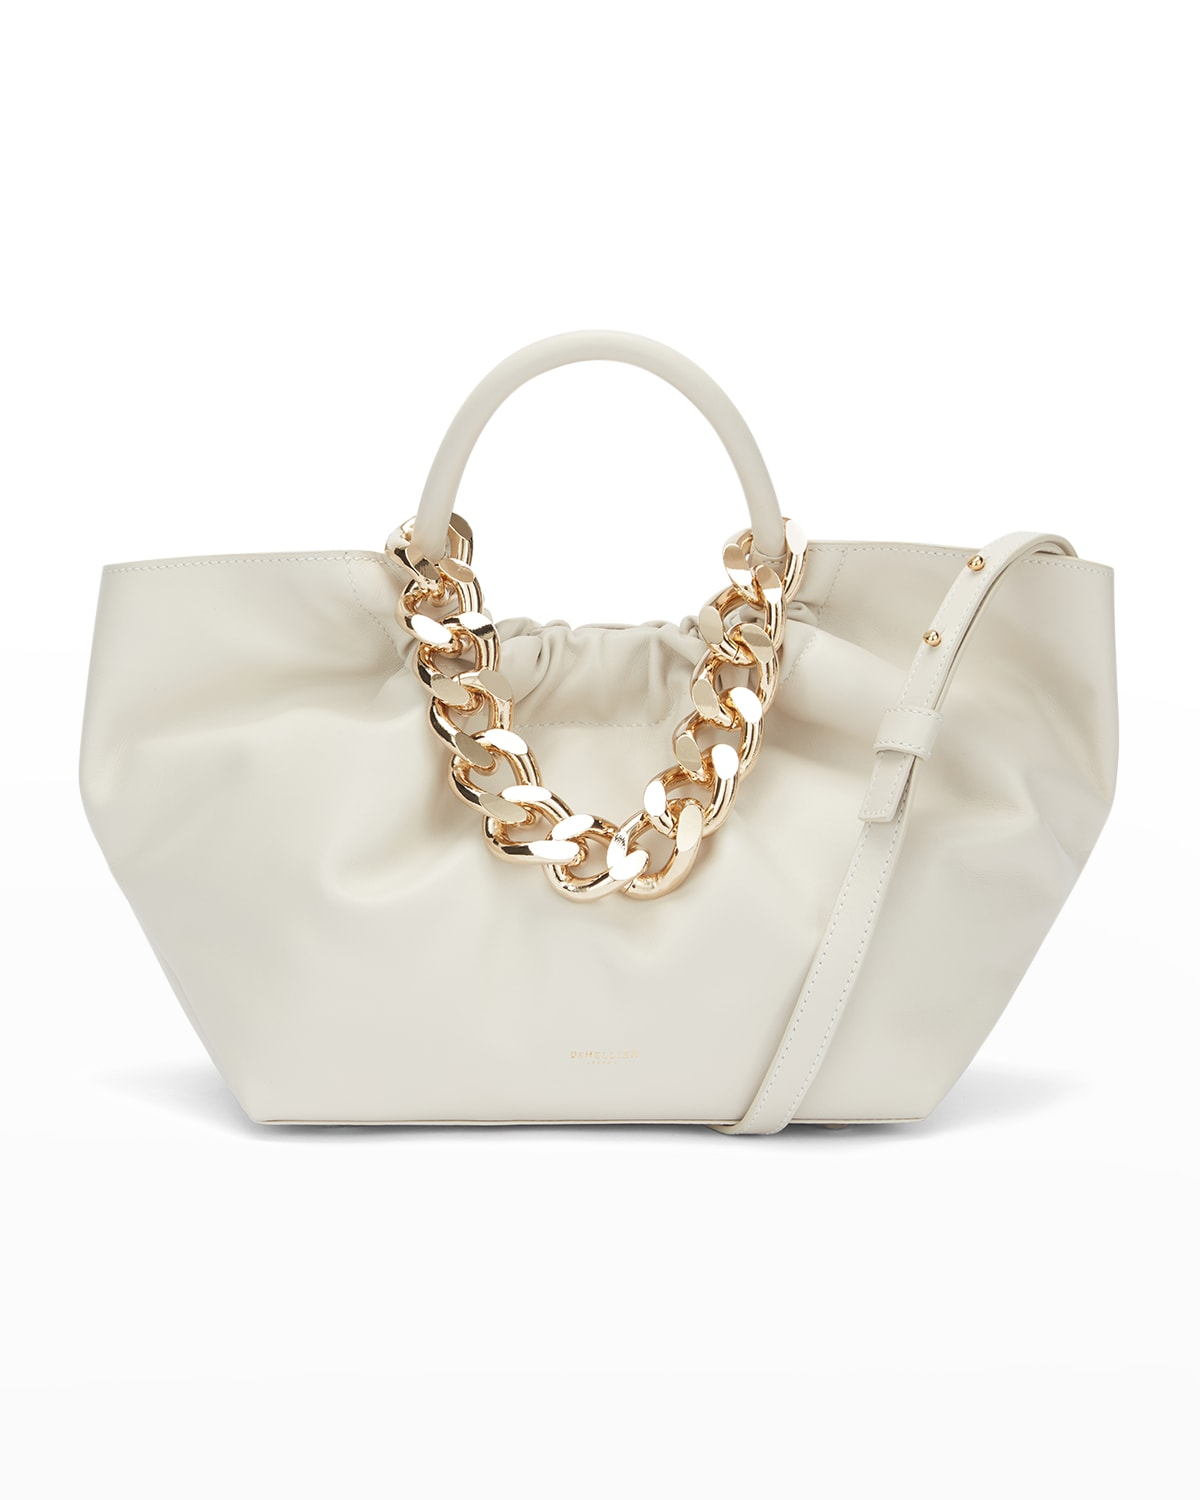 Los Angeles Top-Handle Bag with Chain Strap